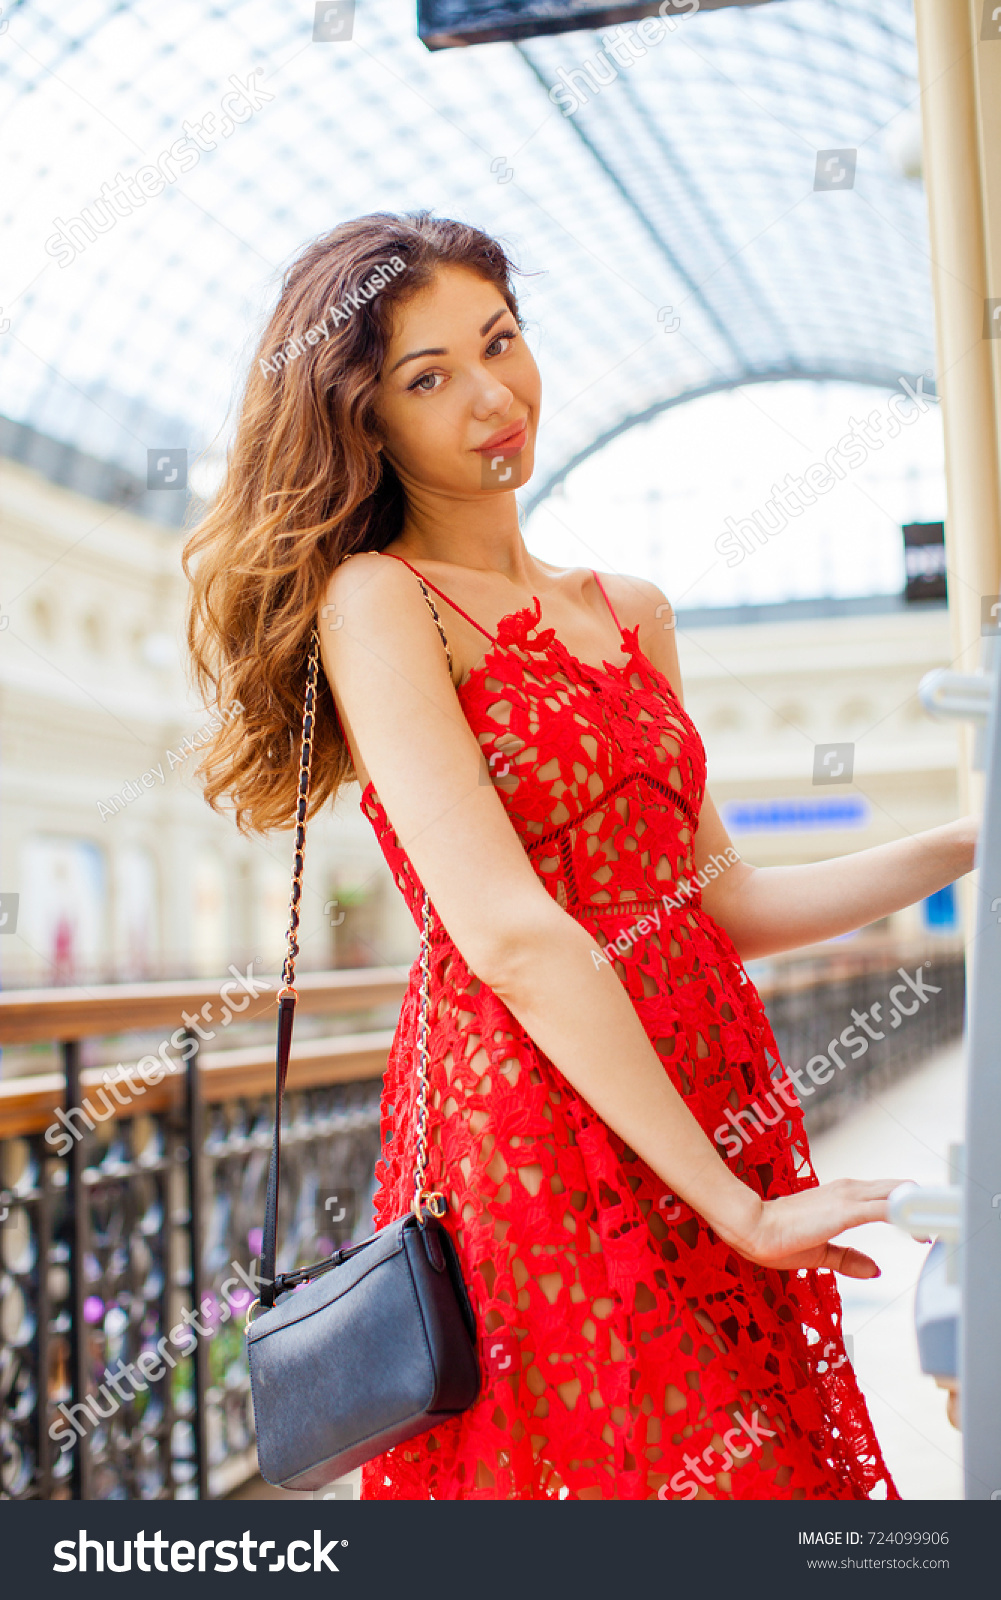 87046292f7de Young happy blonde woman in red dress withdrawing money from credit card at  ATM